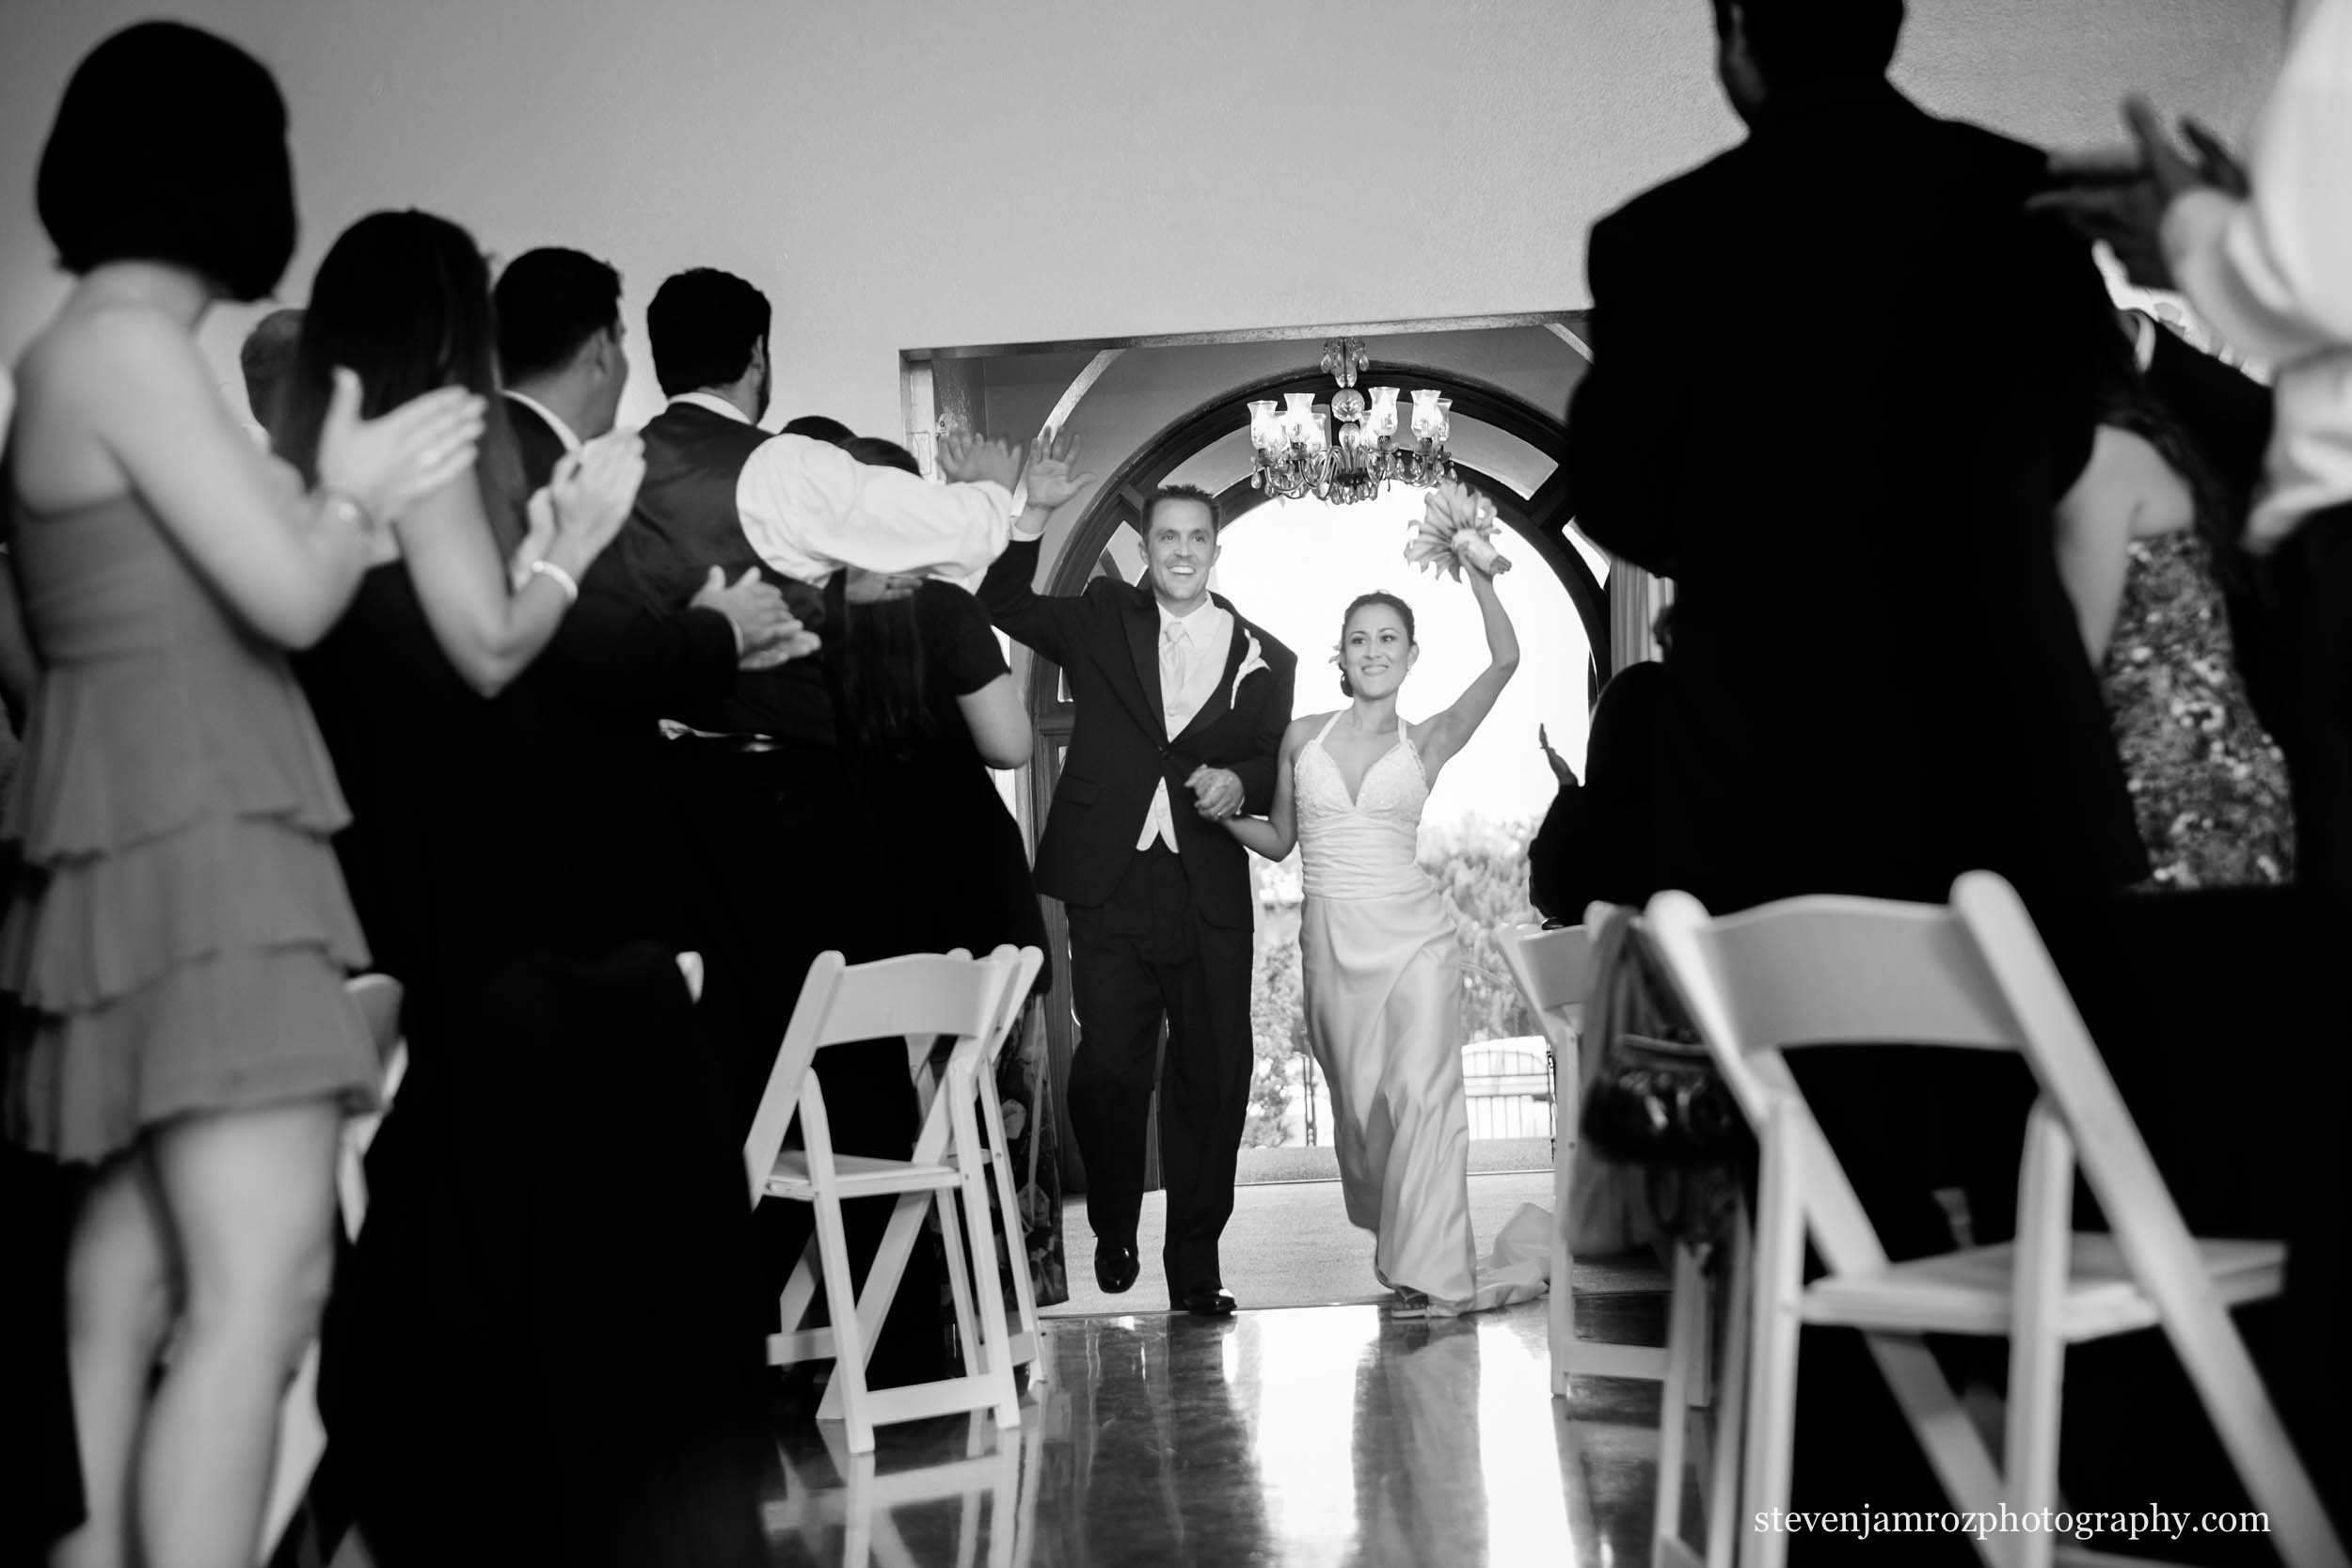 grand-entrance-wedding-raleigh-steven-jamroz-photography-0160.jpg